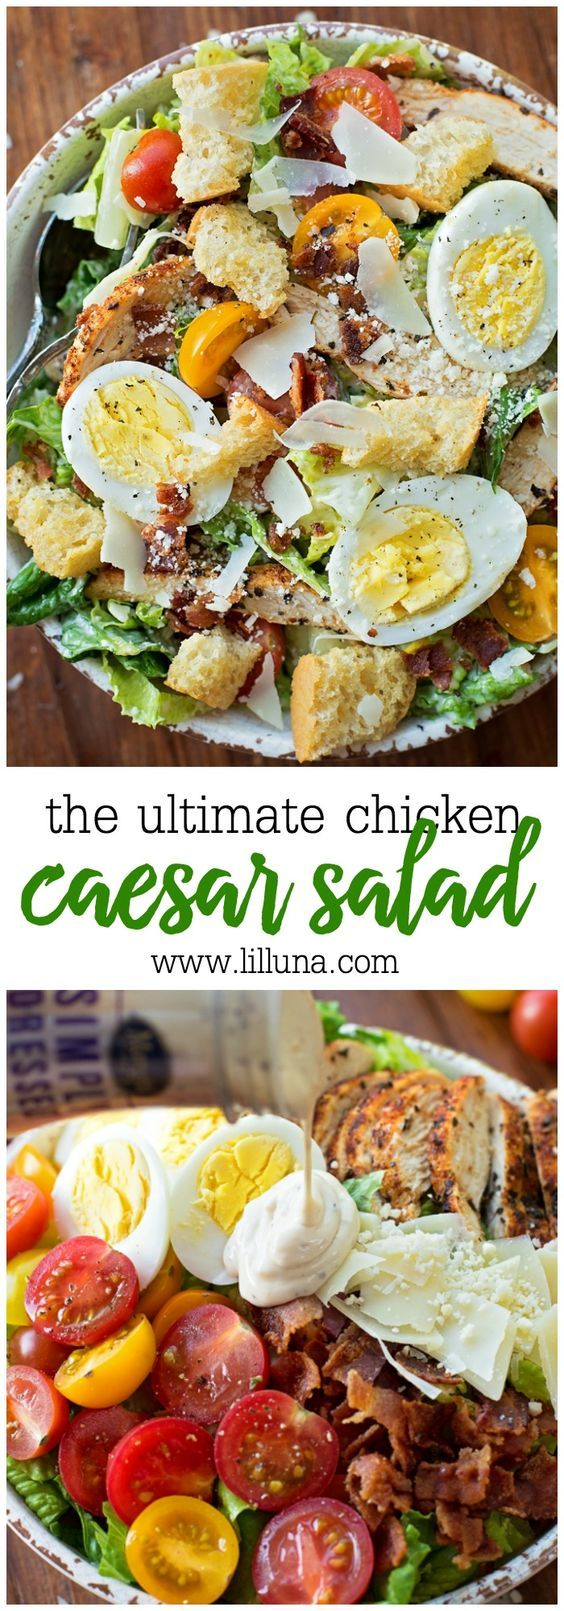 Ultimate Caesar Salad with grilled chicken croutons tomatoes bacon hardboiled eggs Parmesan cheese and tomatoes. Simply AMAZING!!!